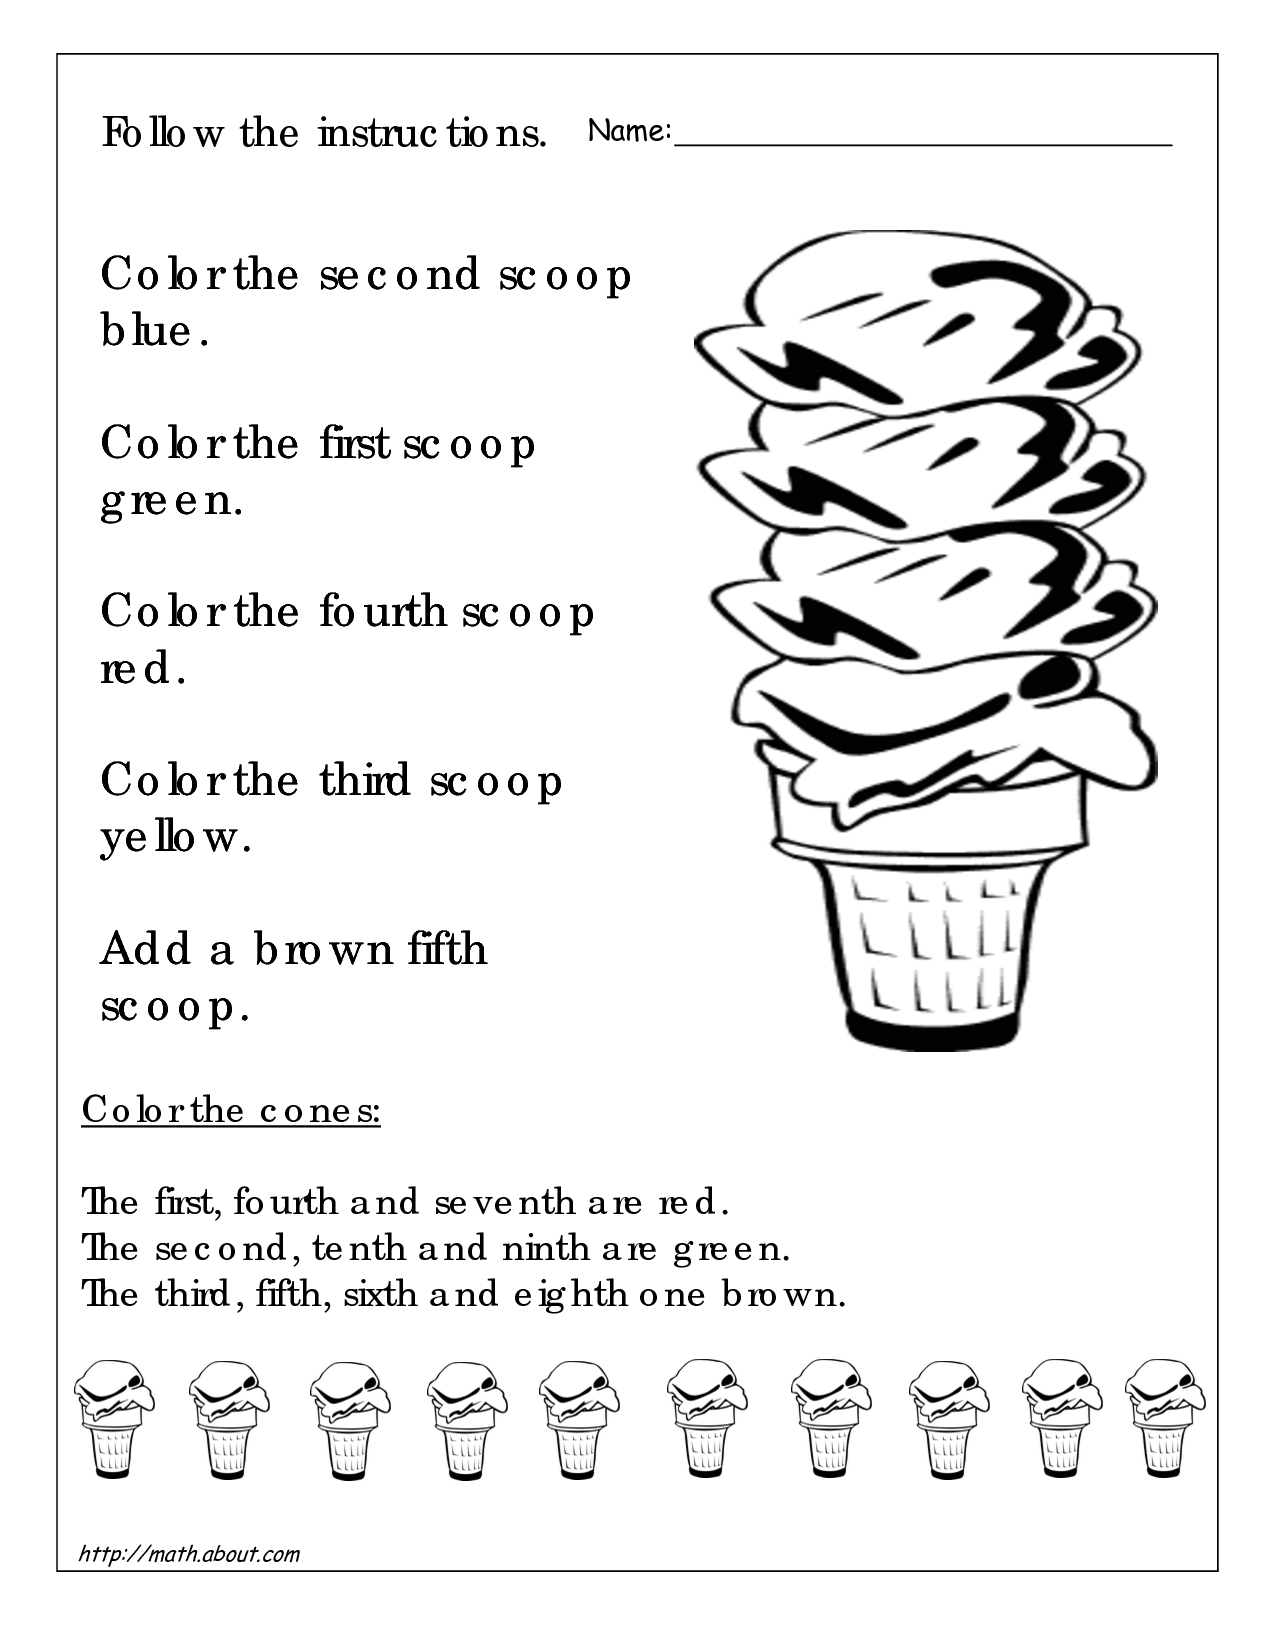 Worksheets 1st Grade Printable Worksheets math worksheets for 3rd graders 1st grade printable students